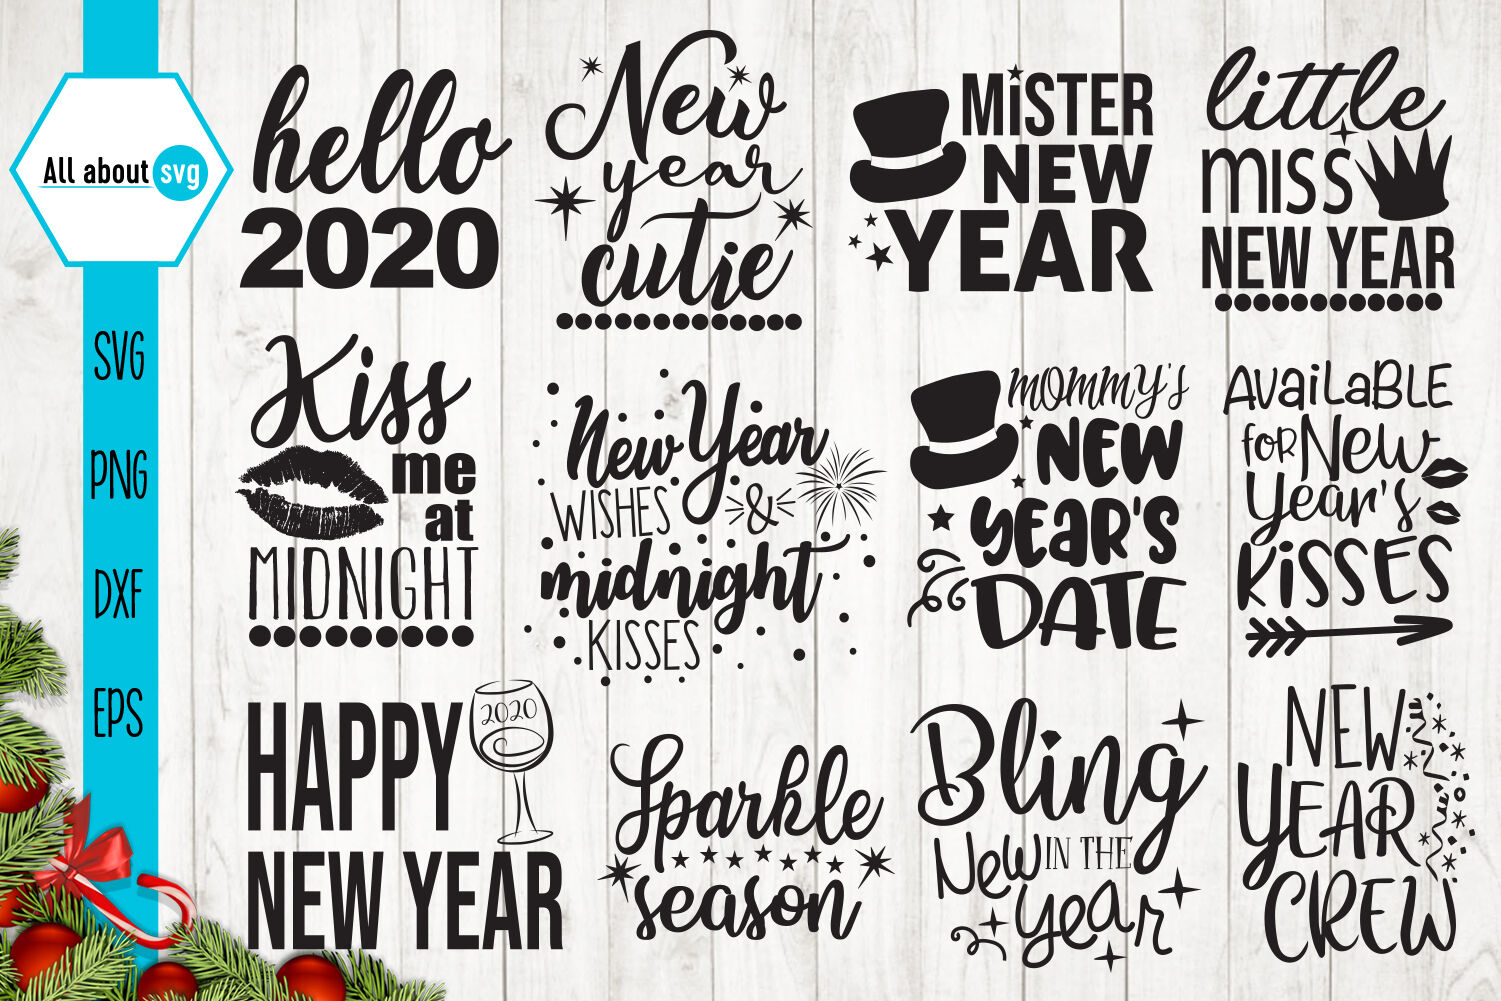 New Year Quotes Svg Bundle By All About Svg Thehungryjpeg Com